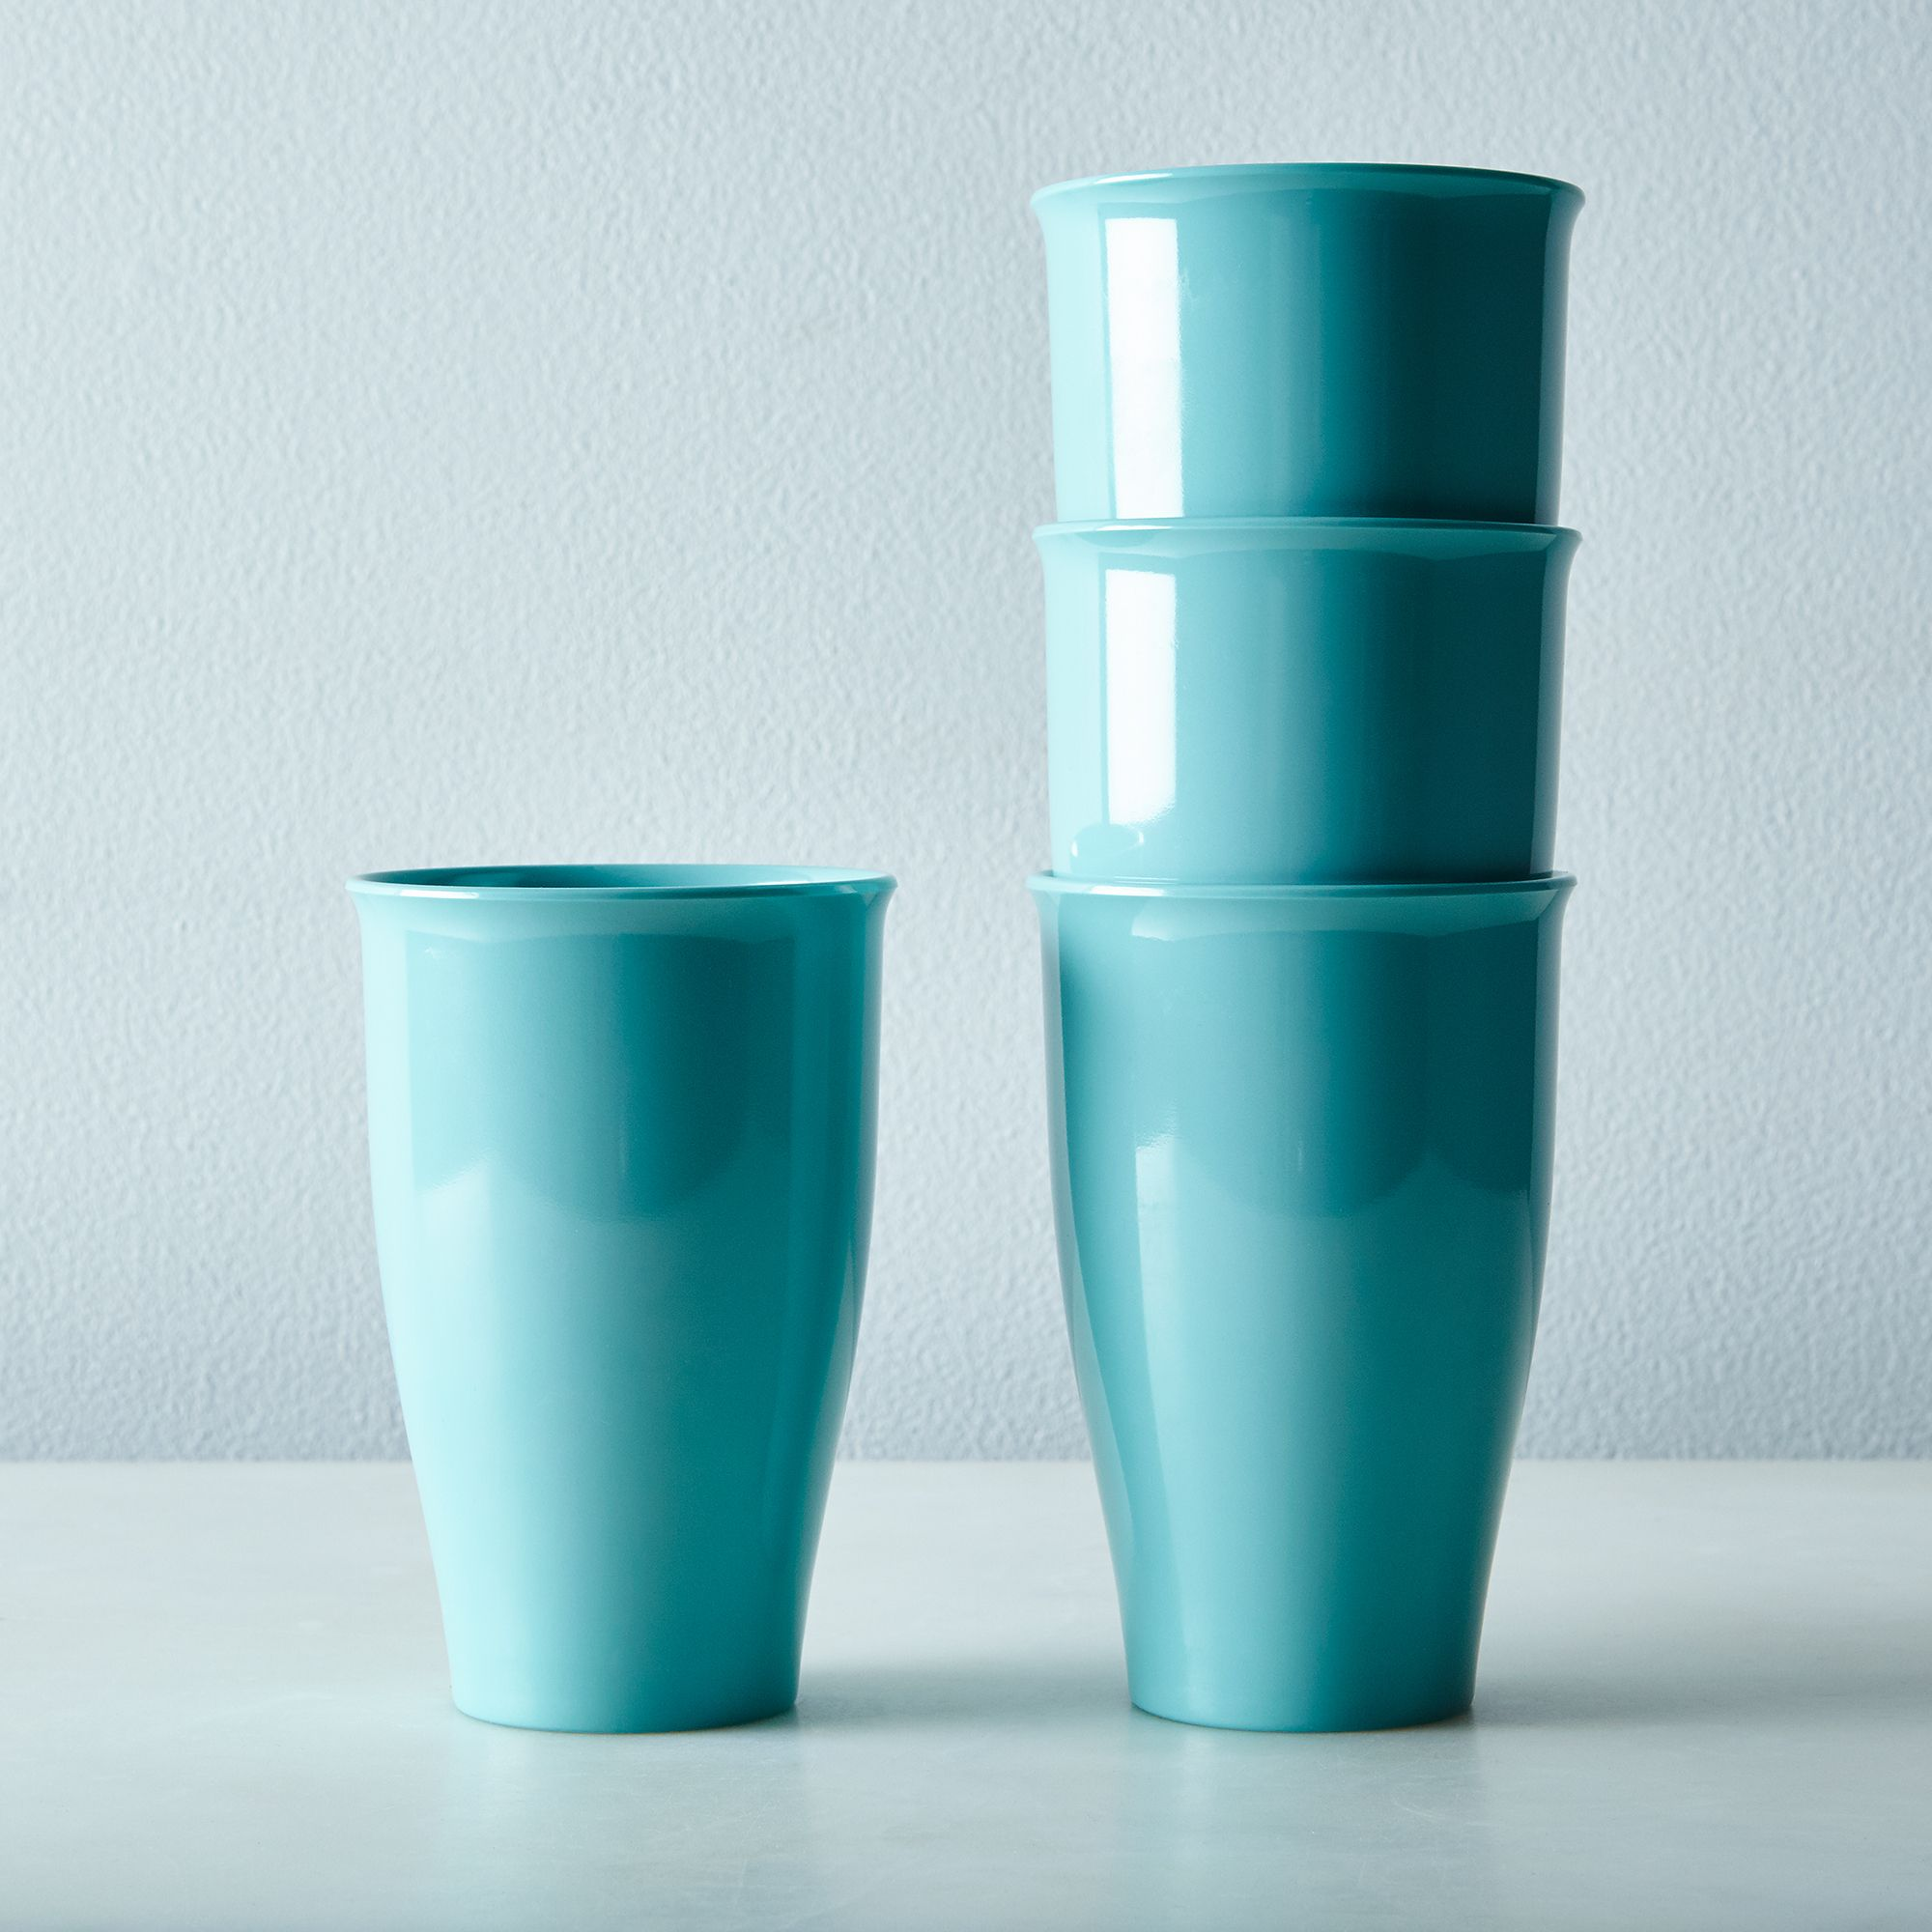 6a9d22b3 397c 4da8 b260 86fe7fc2fc1d  2016 0411 bobs your uncle russel wright melamine dinnerware large tumbler set of 4 aqua silo rocky luten 001